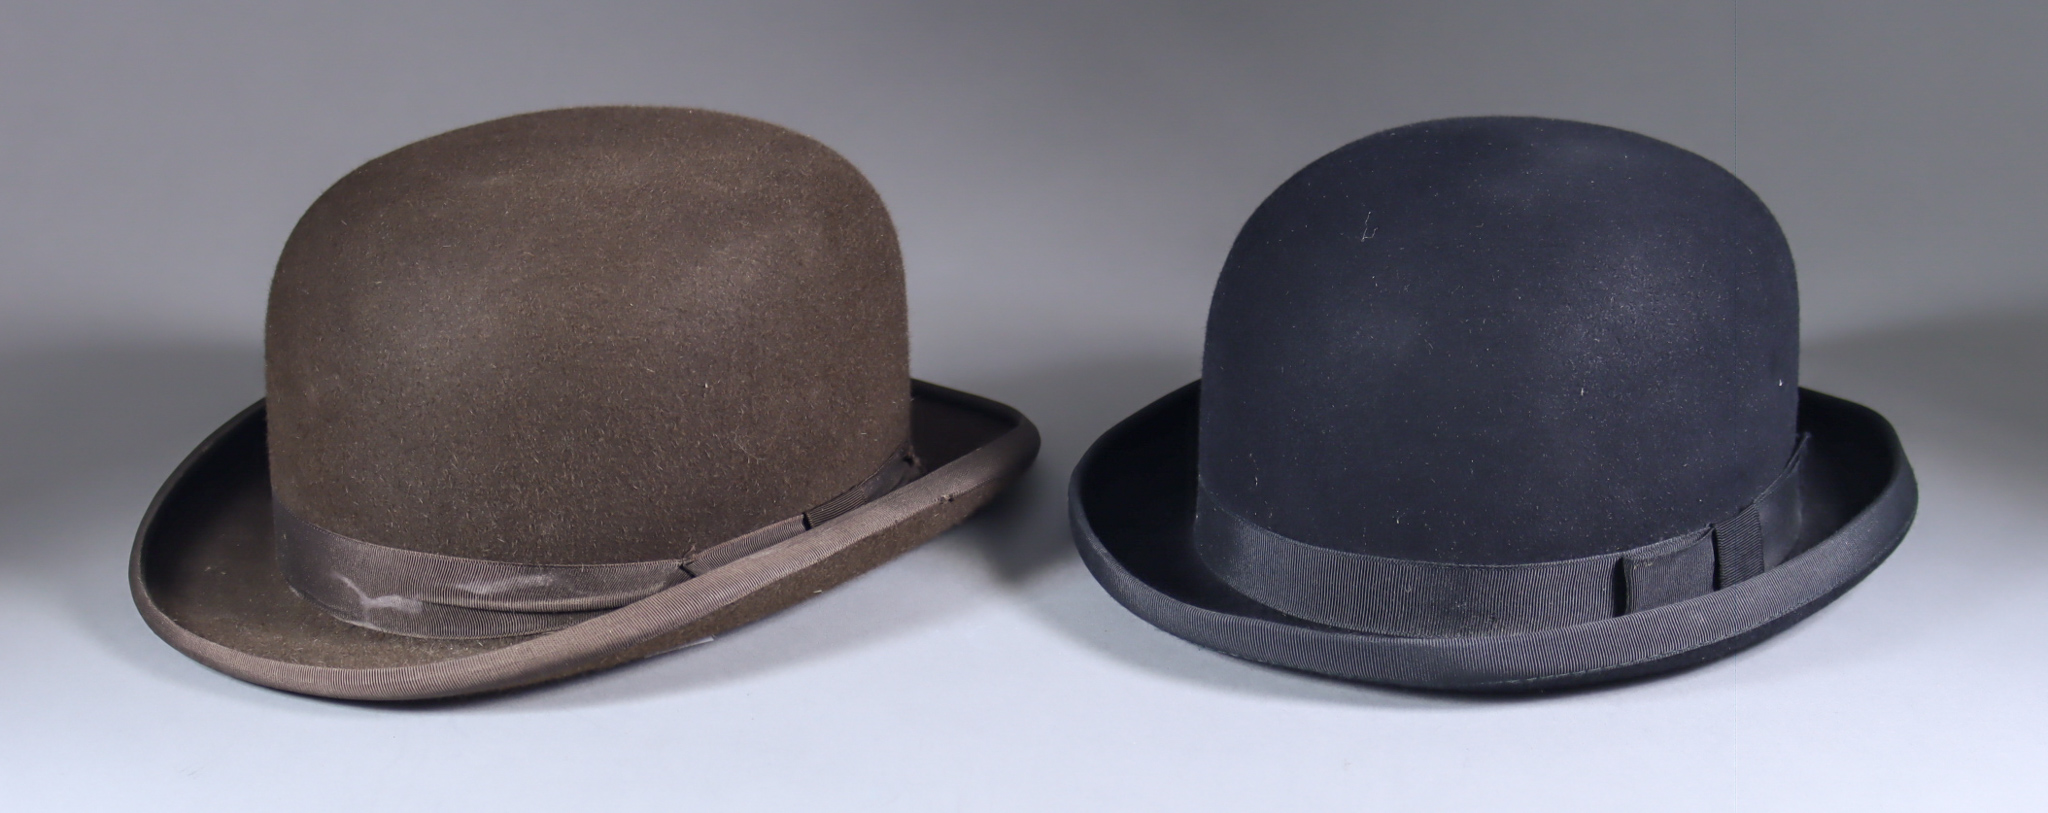 A Black Gresham Bowler Hat and a Brown Bowler Hat, the black hat from Failsworth, size 57, the brown